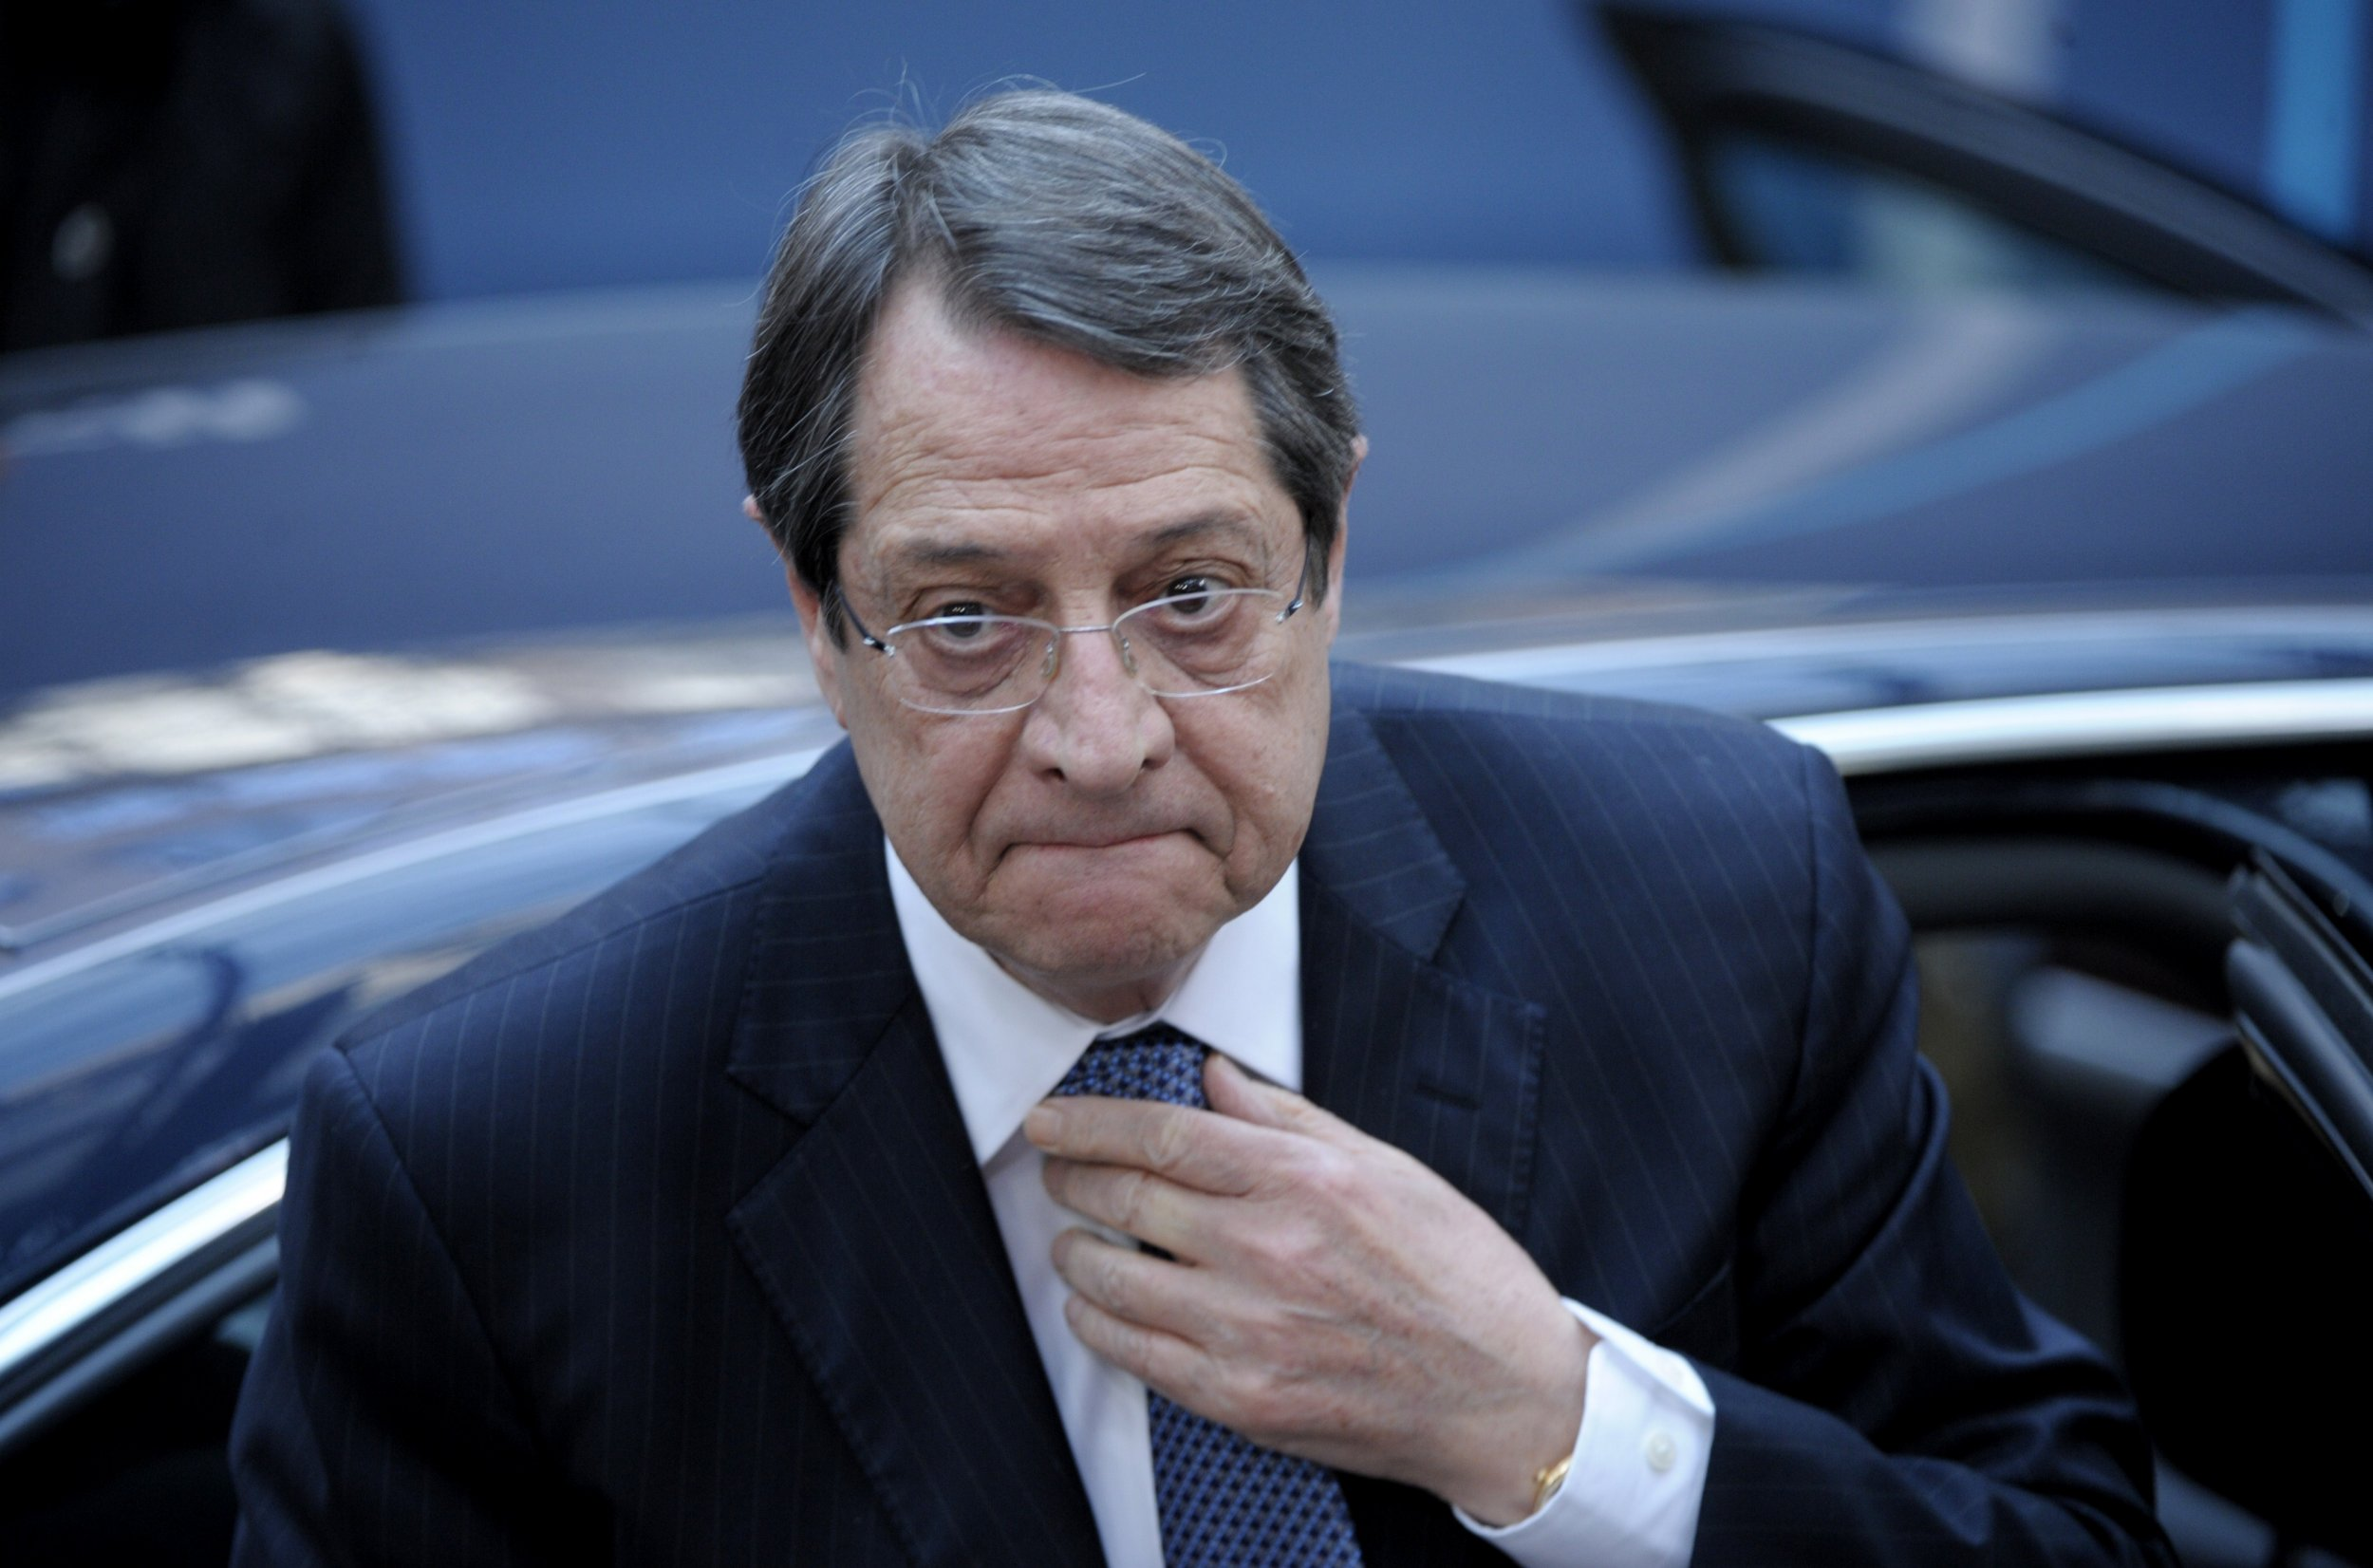 Cypriot President Nicos Anastasiades arrives ahead of the European Council Summit at the European Union (EU) Headquarters in Brussels on February 12, 2015 AFP PHOTO / ALAIN JOCARD (Photo credit should read ALAIN JOCARD/AFP/Getty Images)